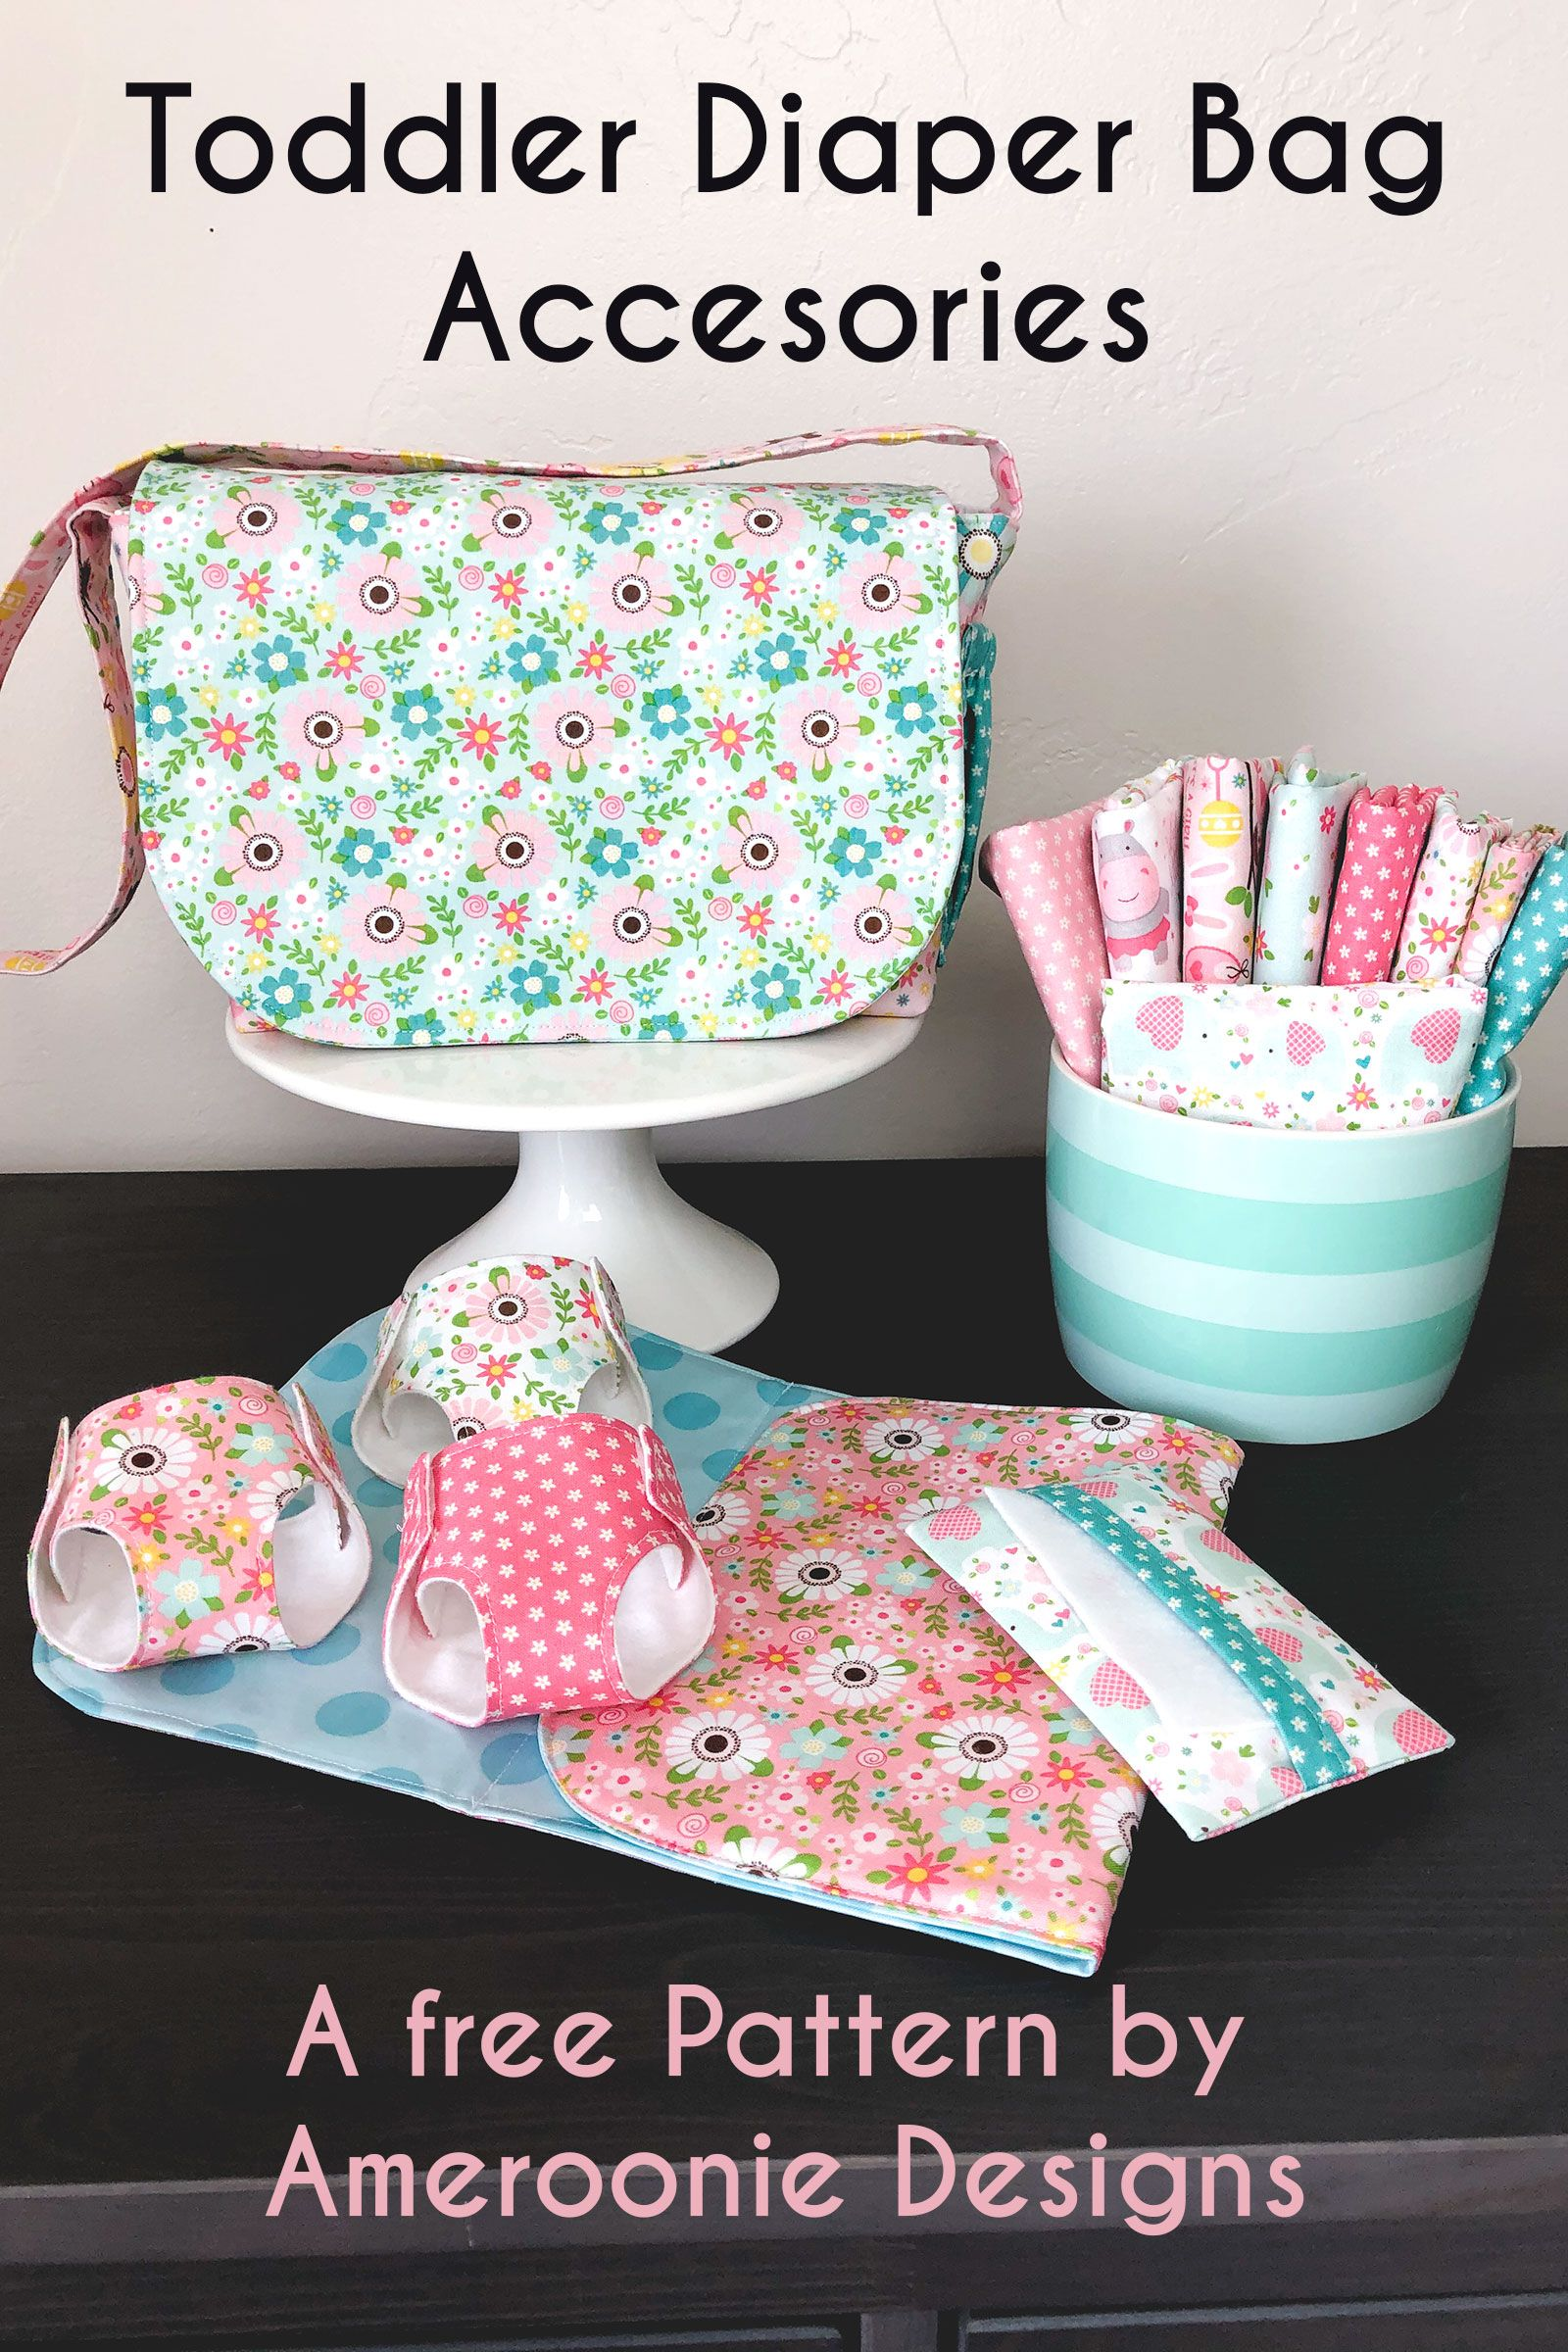 Sew A Set Of Diaper Bag Accessories For Your Little Toddler With This Free Pattern Diaper Bag Sewing Pattern Baby Doll Clothes Patterns Toddler Diaper Bag